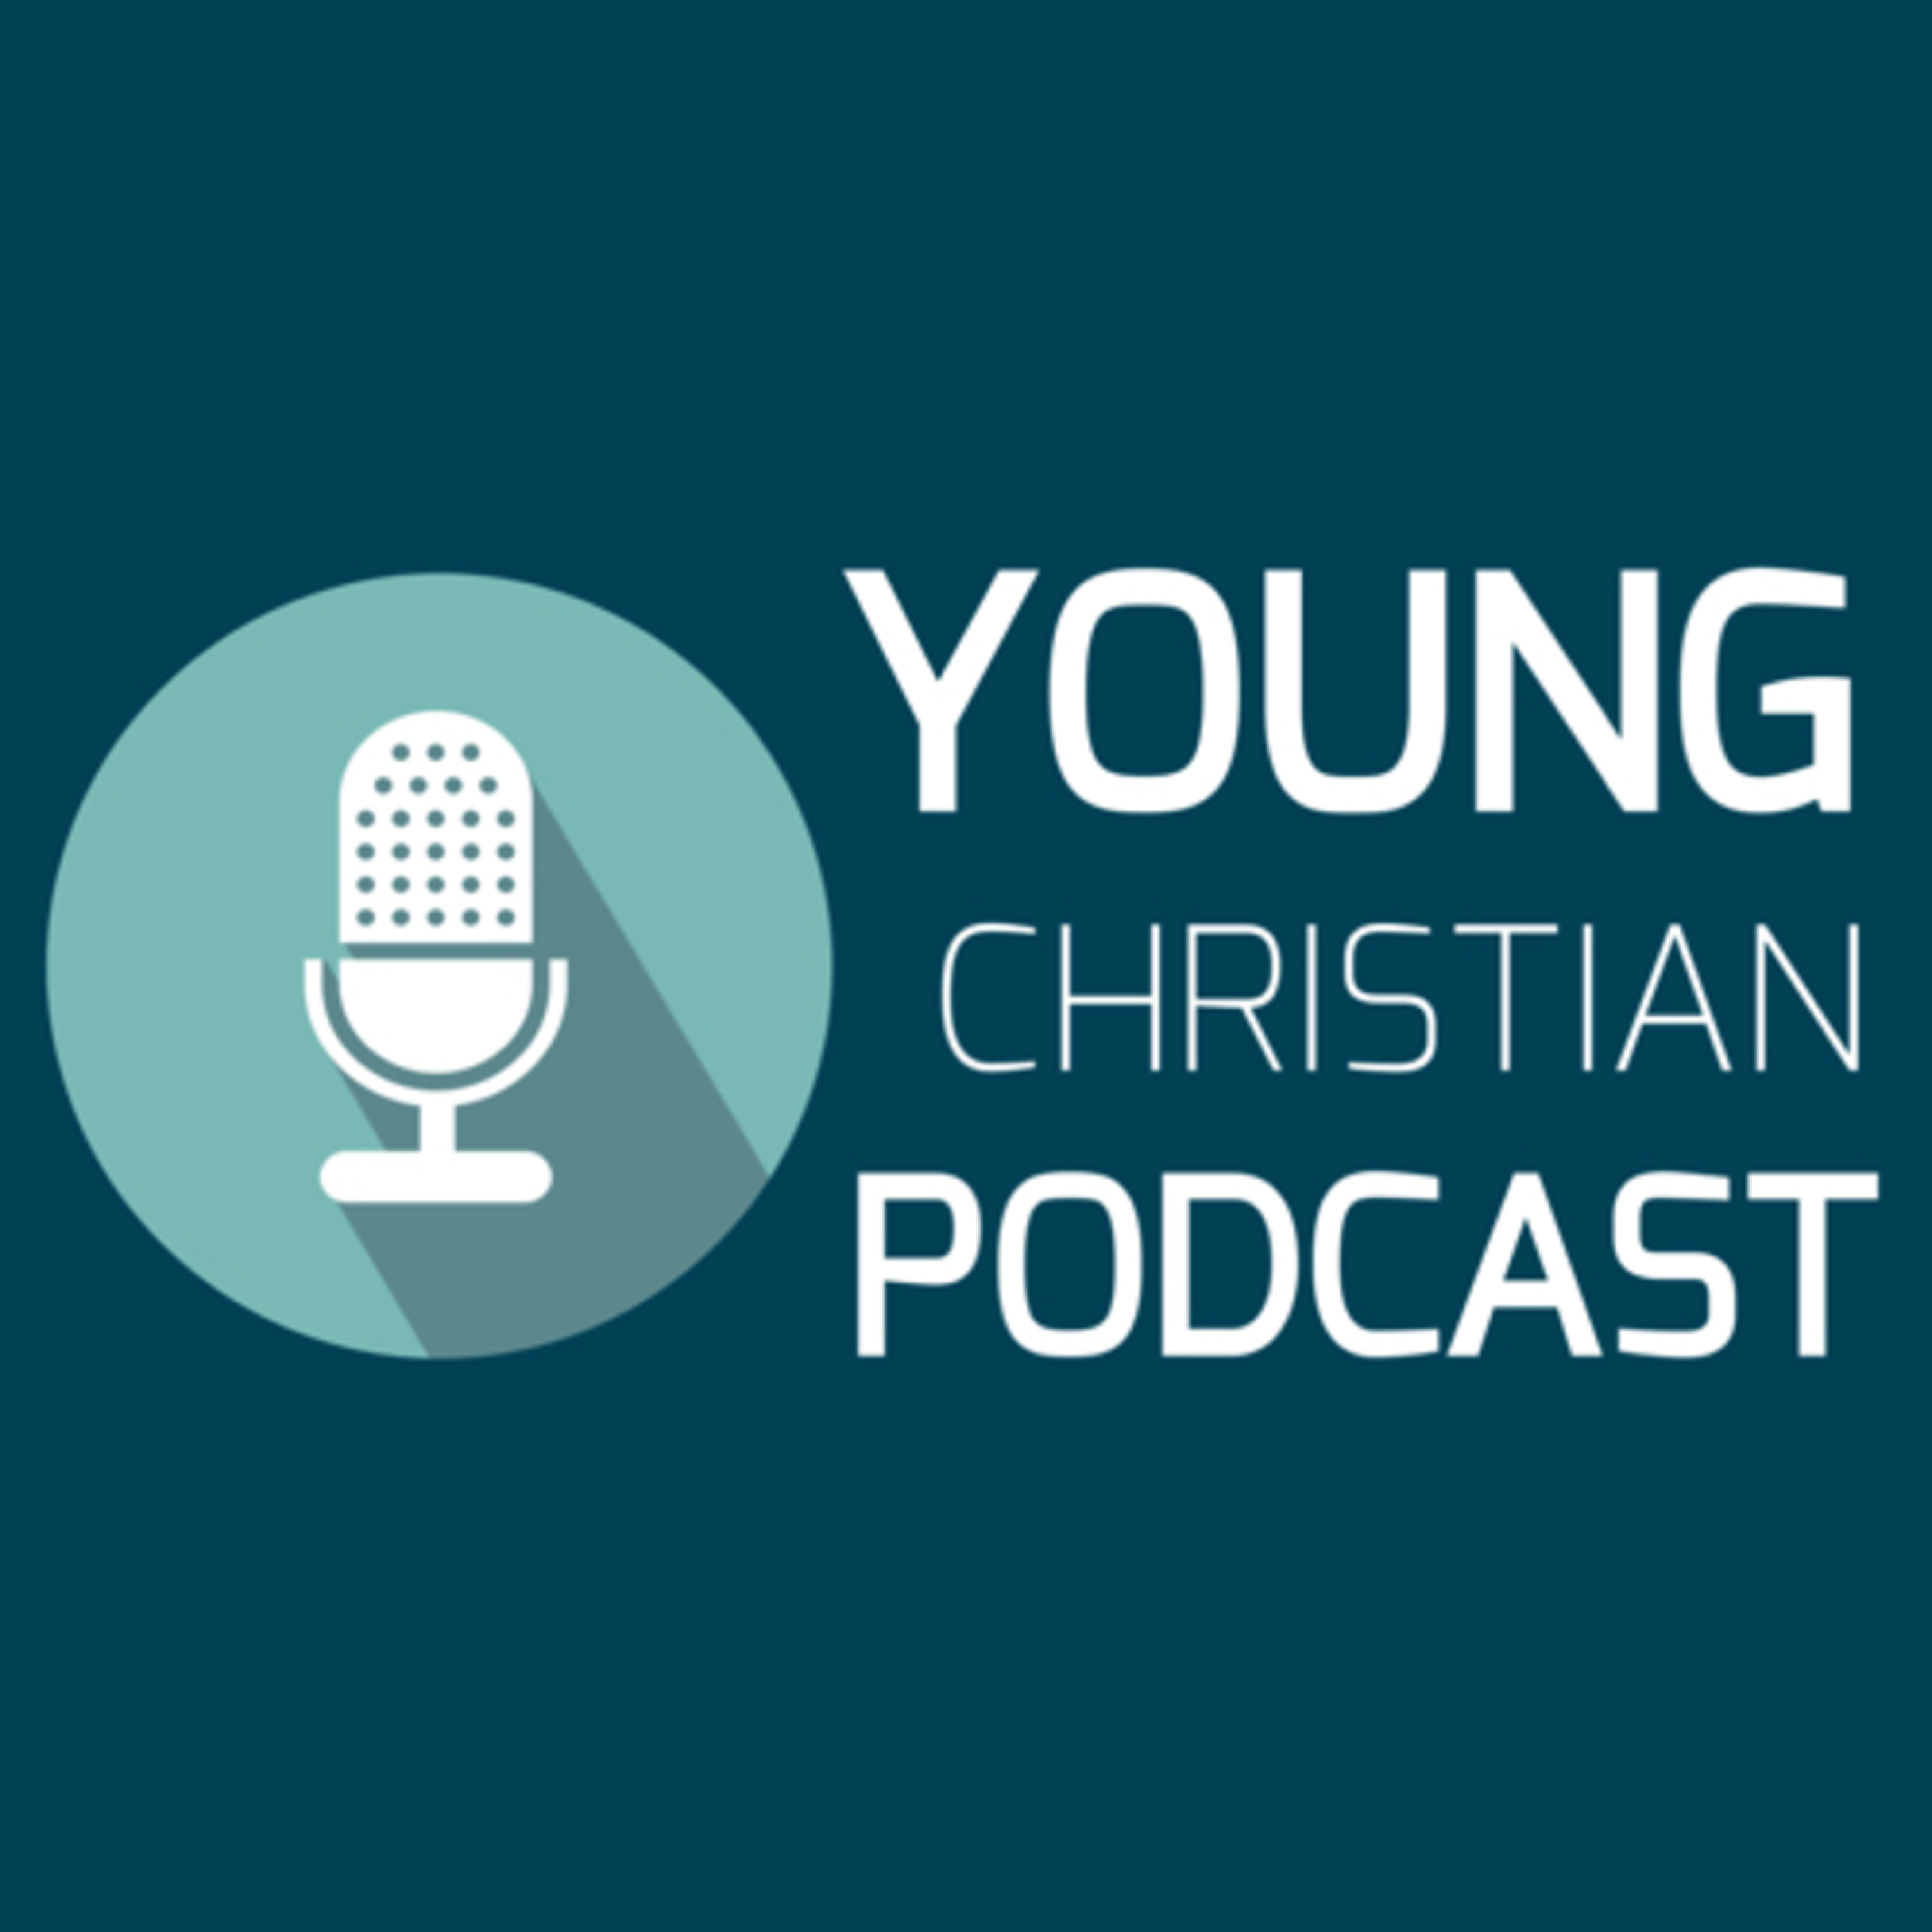 Young Christian Podcast